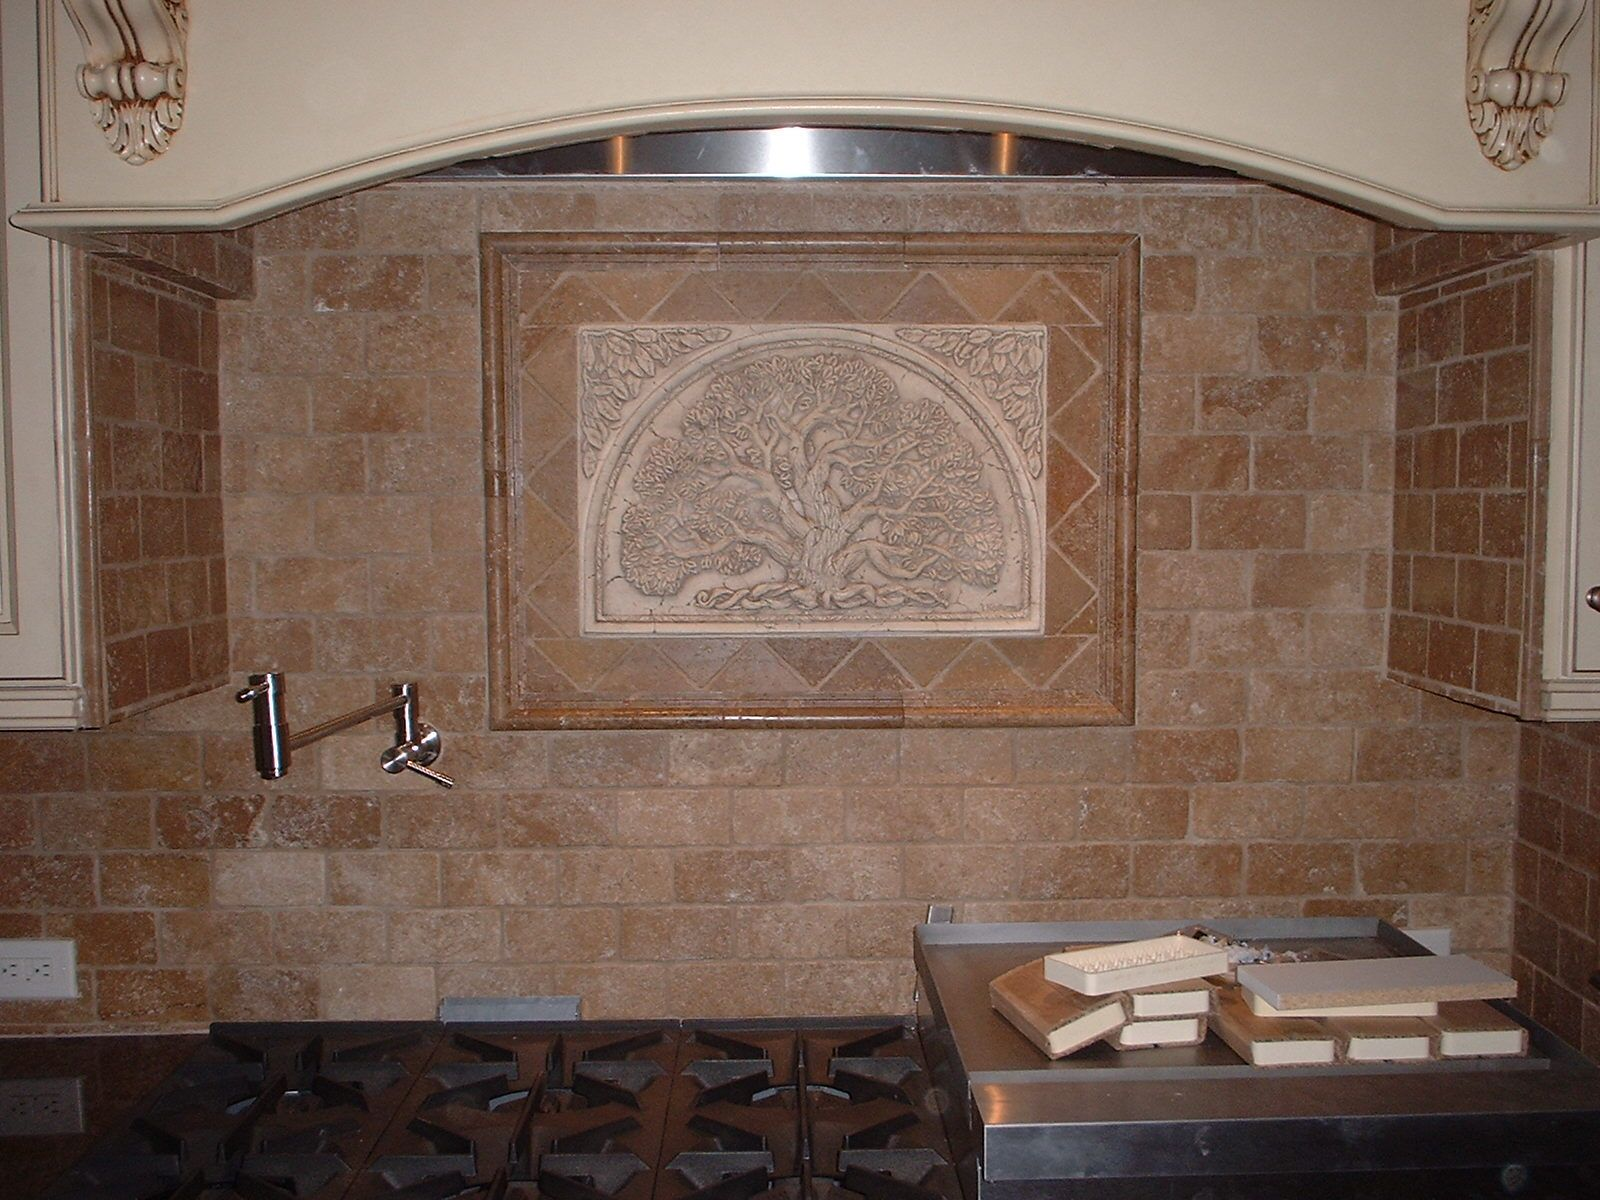 wallpaper kitchen backsplash ideas backsplash designs pictures wallpaper kitchen backsplash ideas backsplash designs pictures download wallpaper tile backsplash ideas